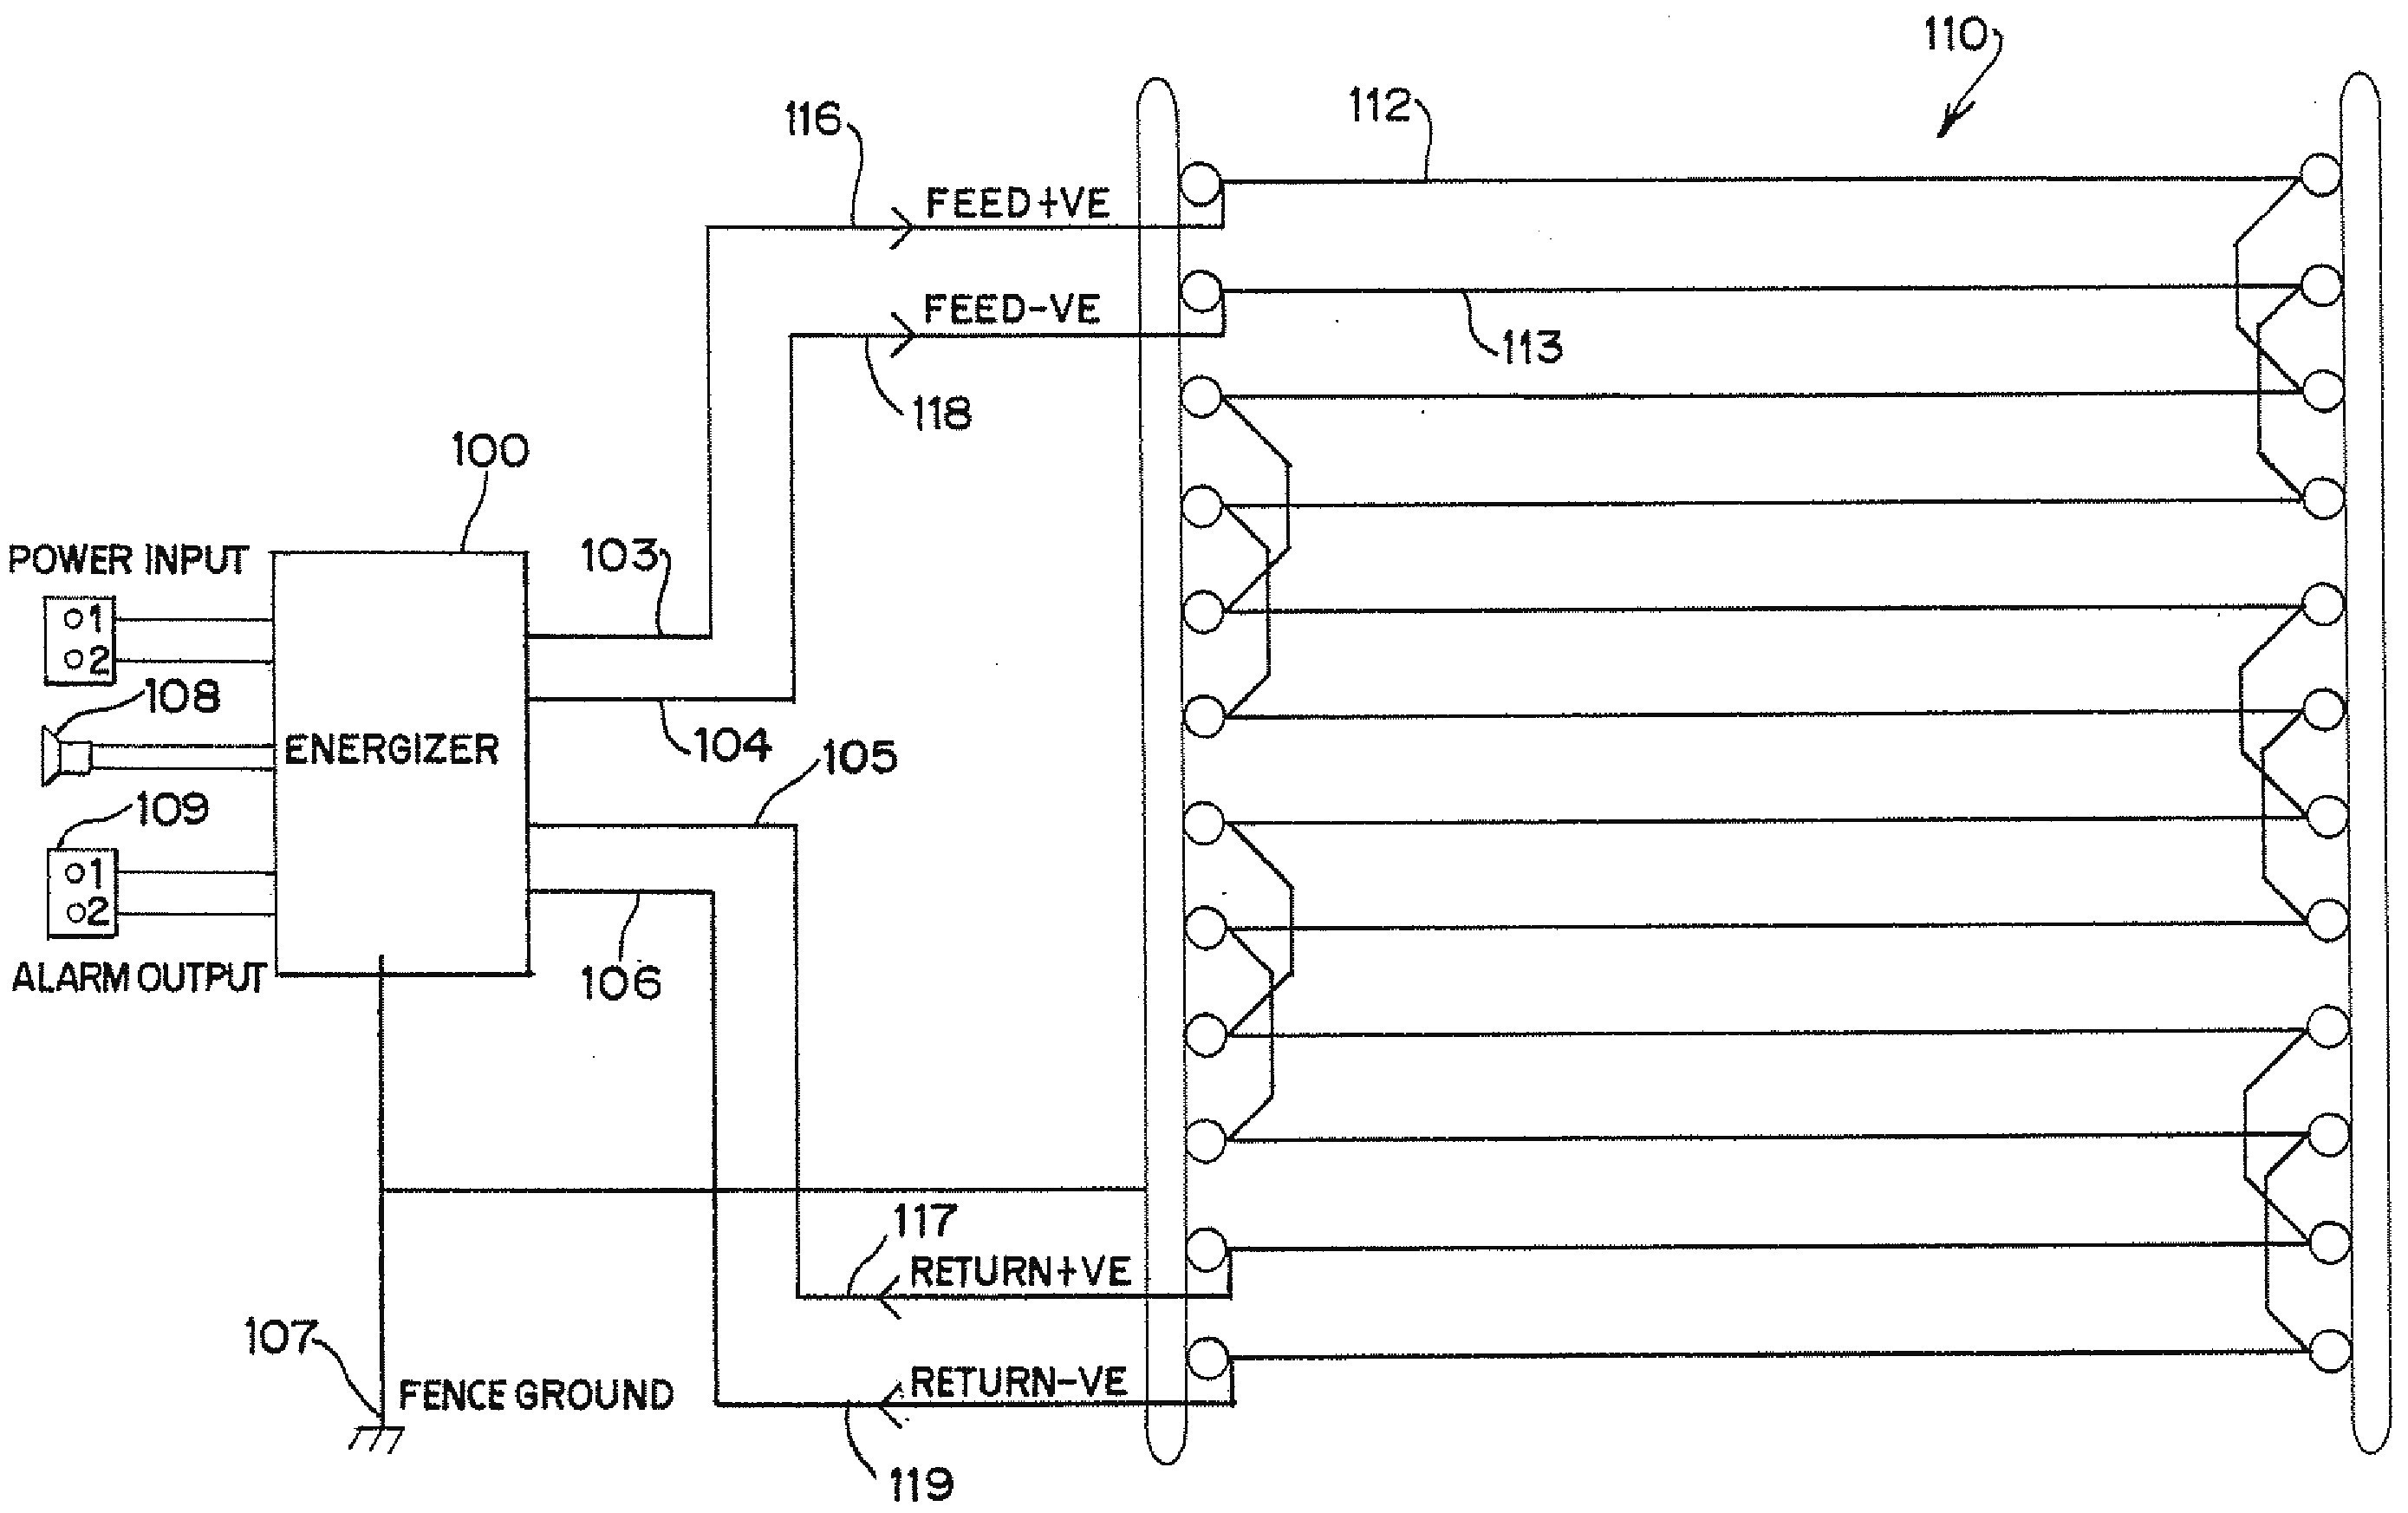 How to Wire An Electric Fence Diagram Fresh Electric Fence Wiring Diagram Afif